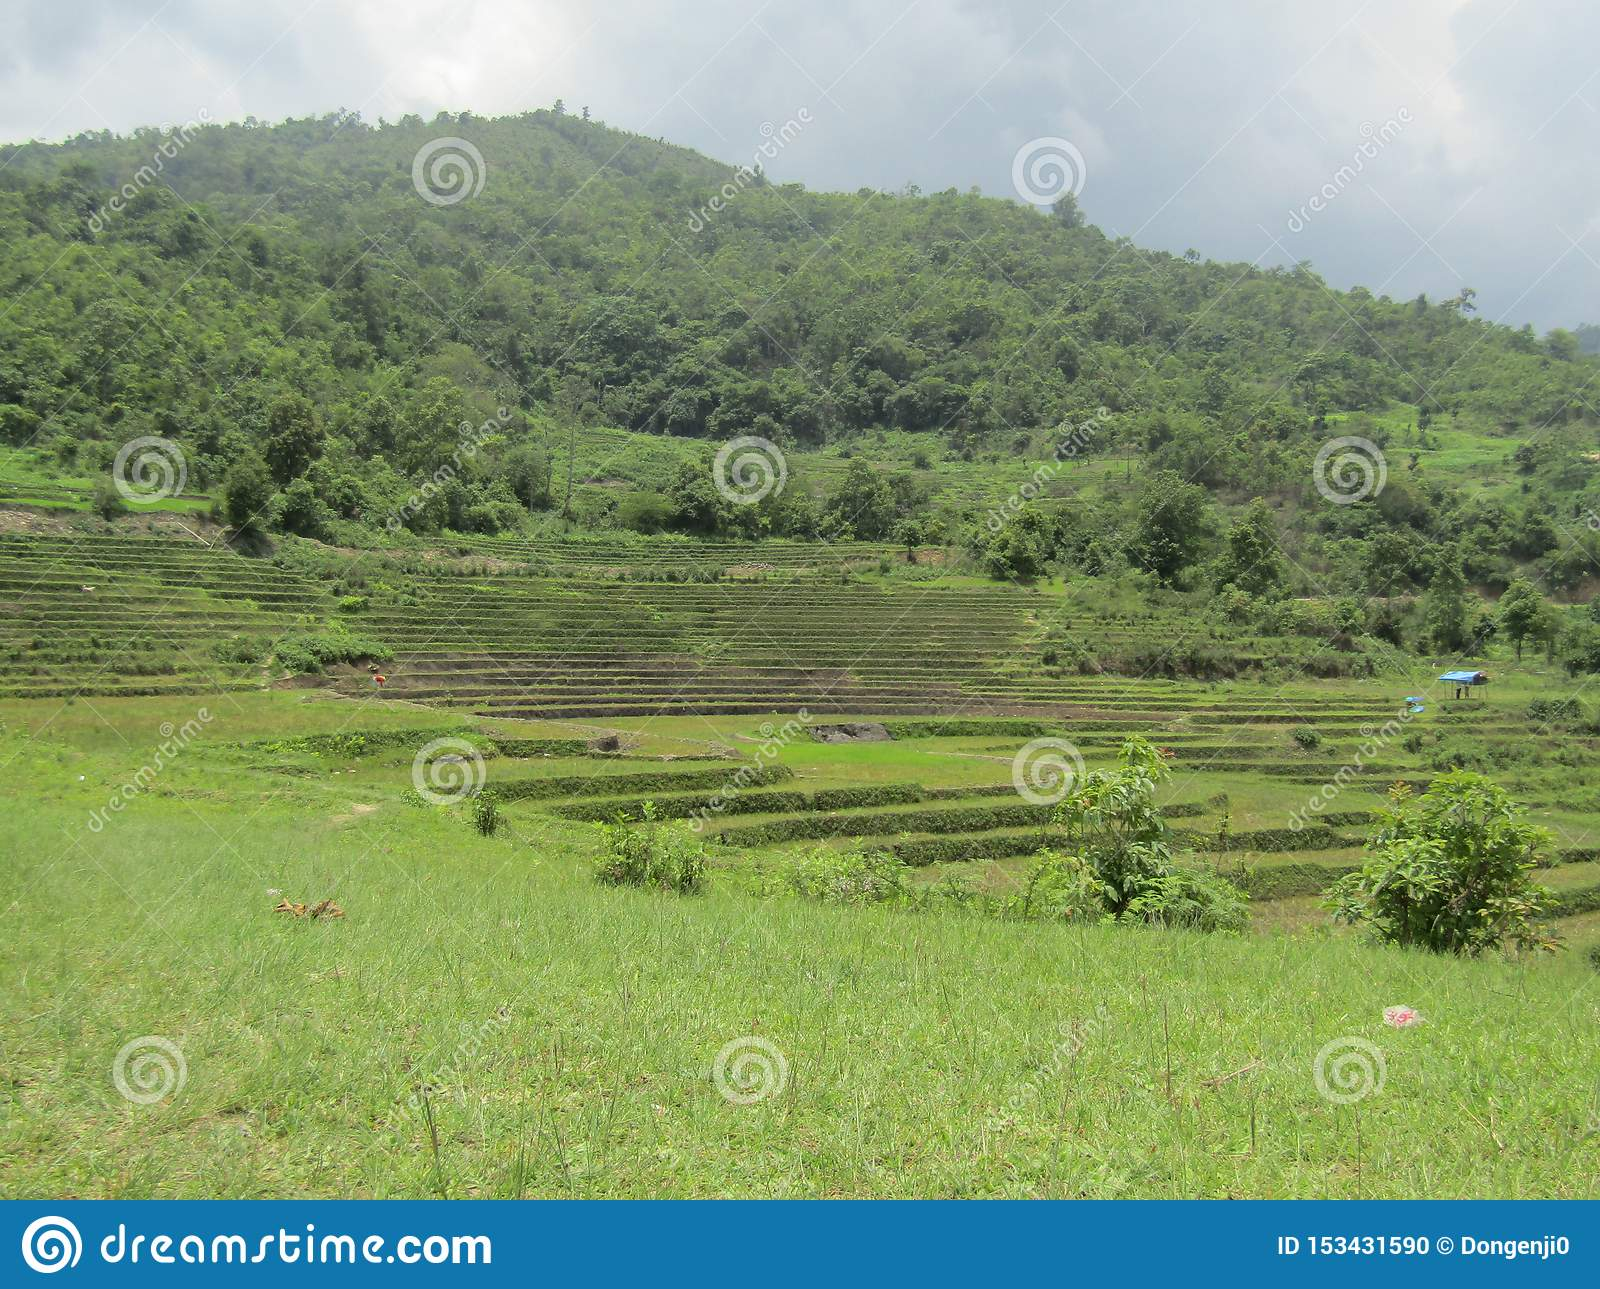 Green field in the mid of mountains